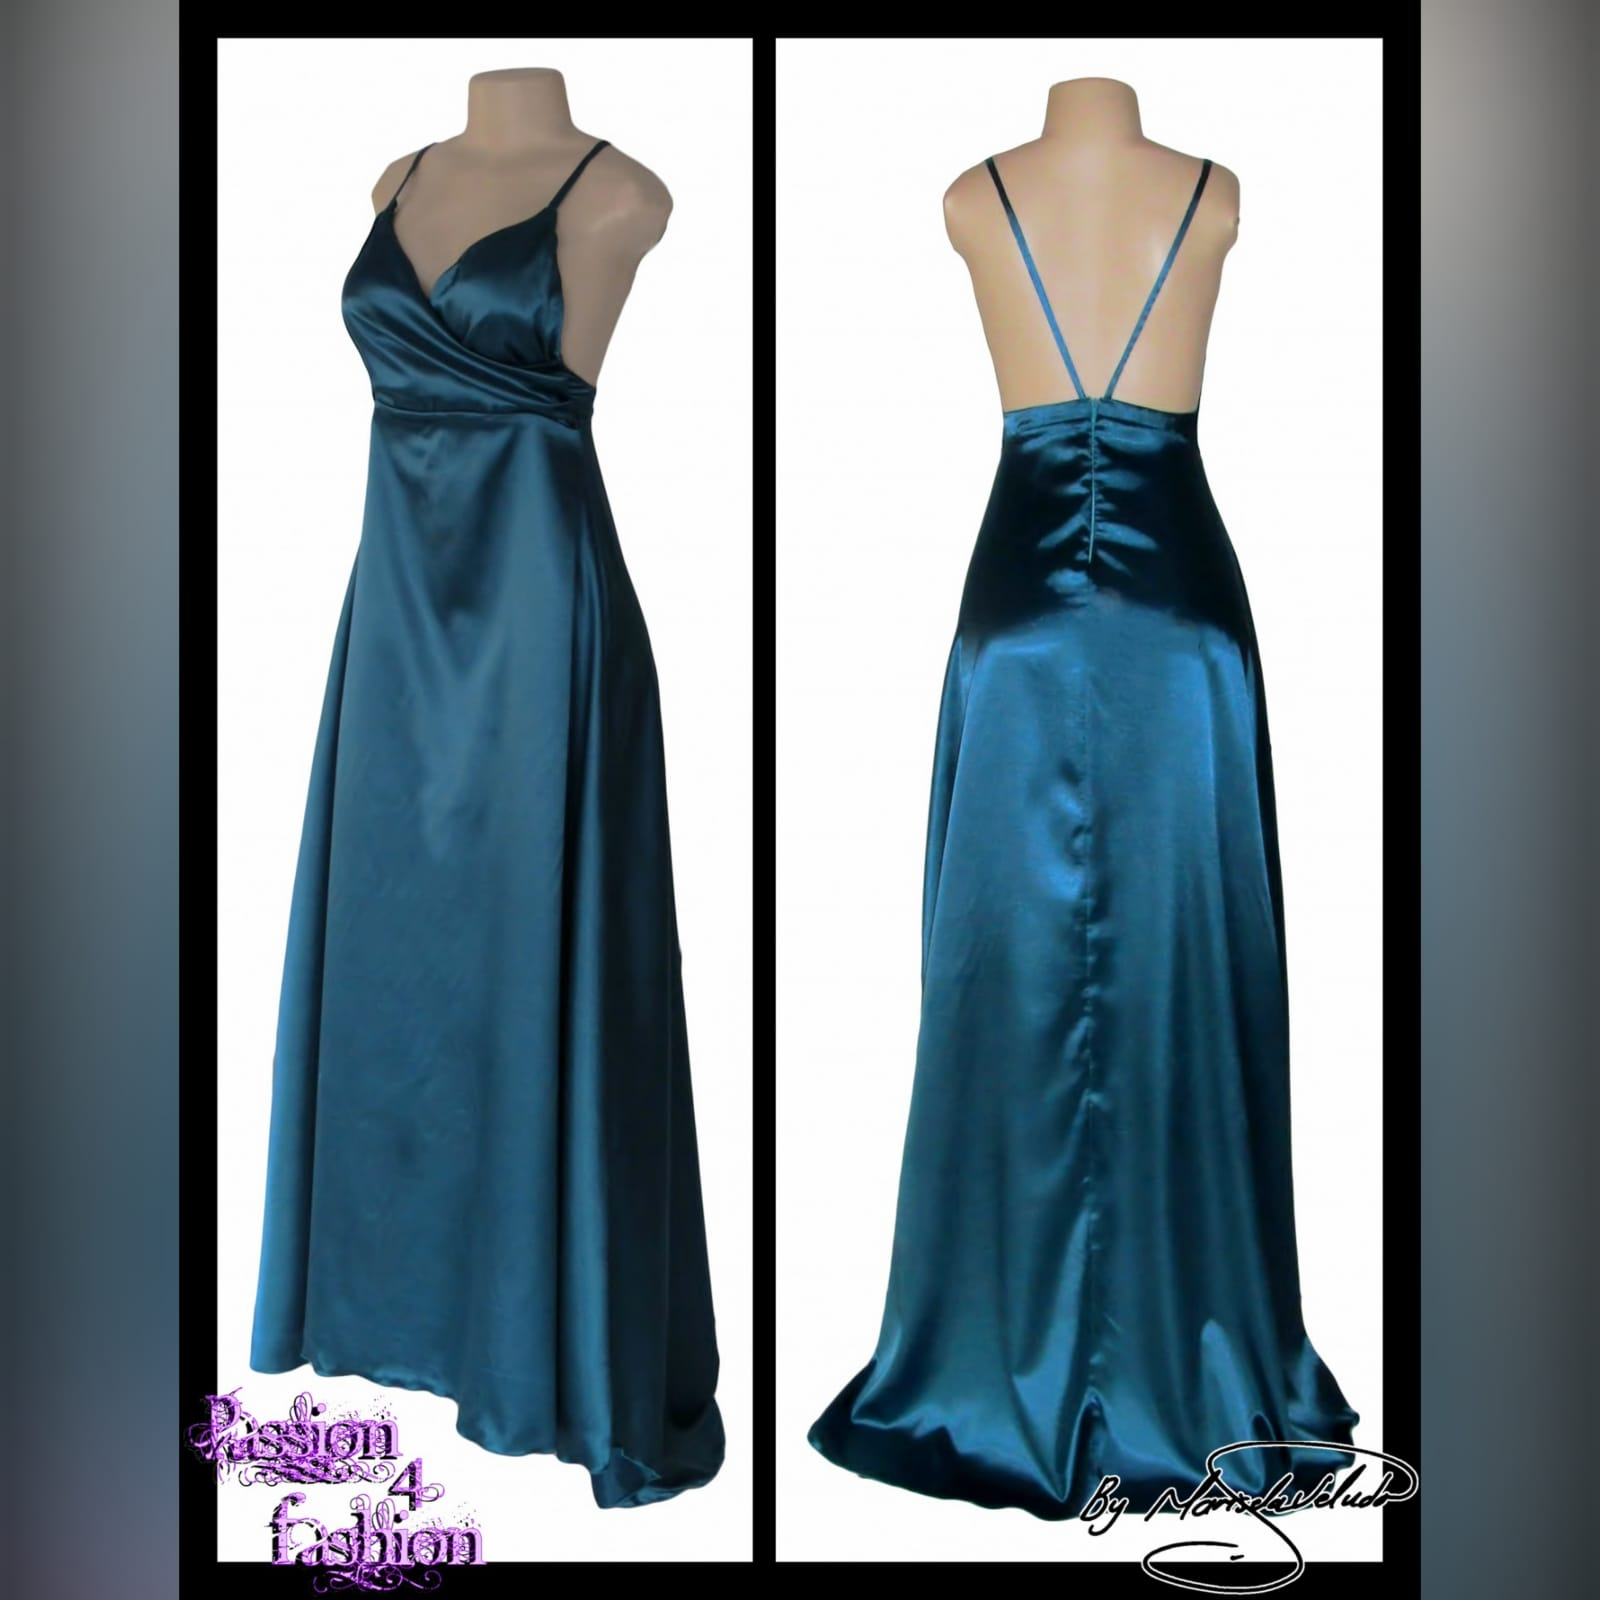 Teal long satin evening dress 4 teal long satin evening dress with a crossed bust neckline, backless design with 2 thin straps. With a small train.